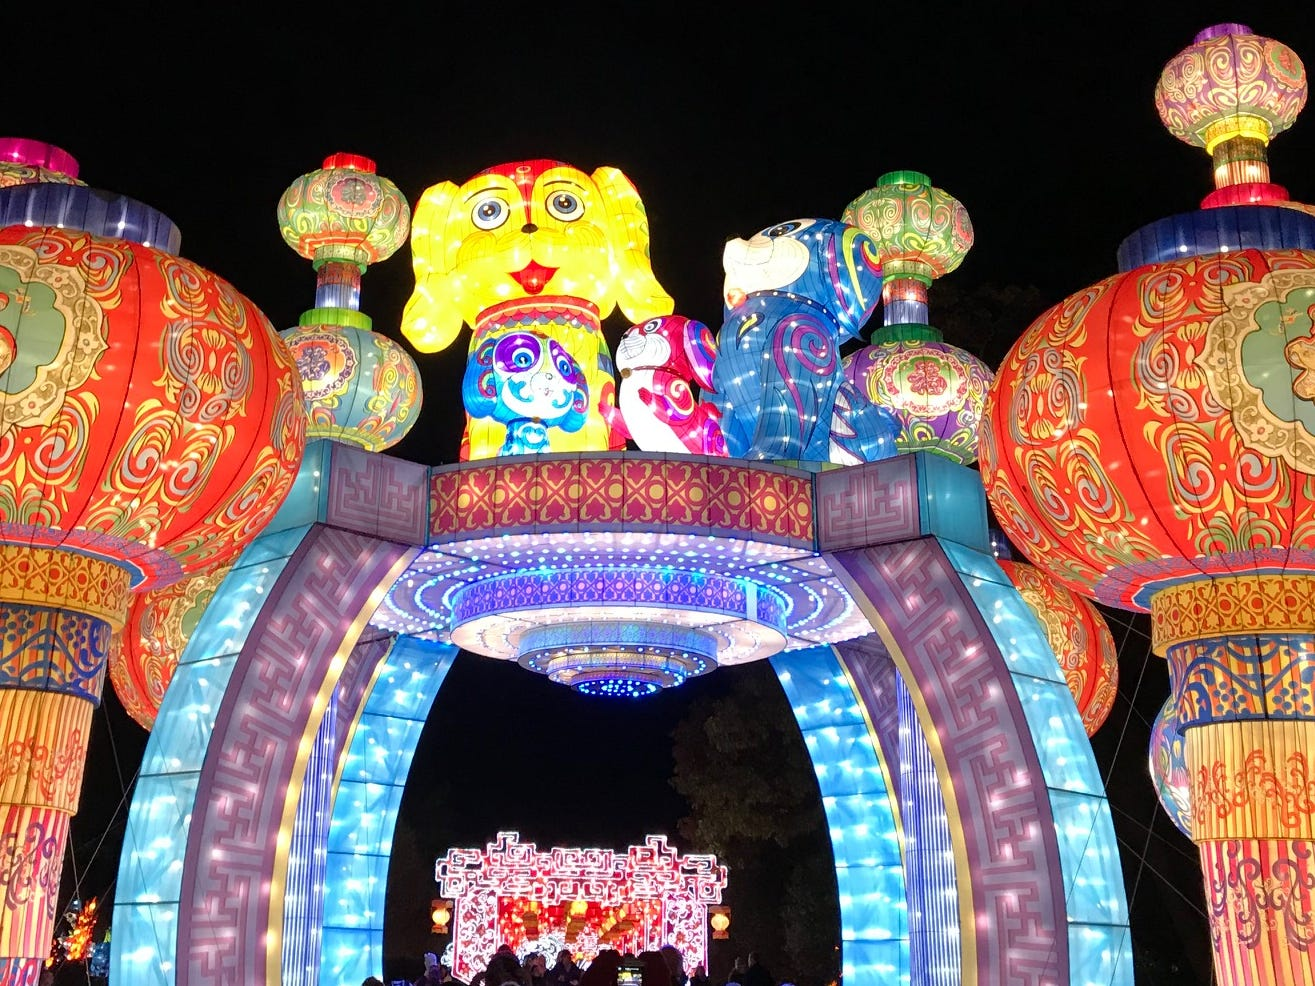 The 2018 China Lights festival includes a pavilion-shaped lantern display with a dog lantern on top. It's the year of the dog in the Chinese zodiac.